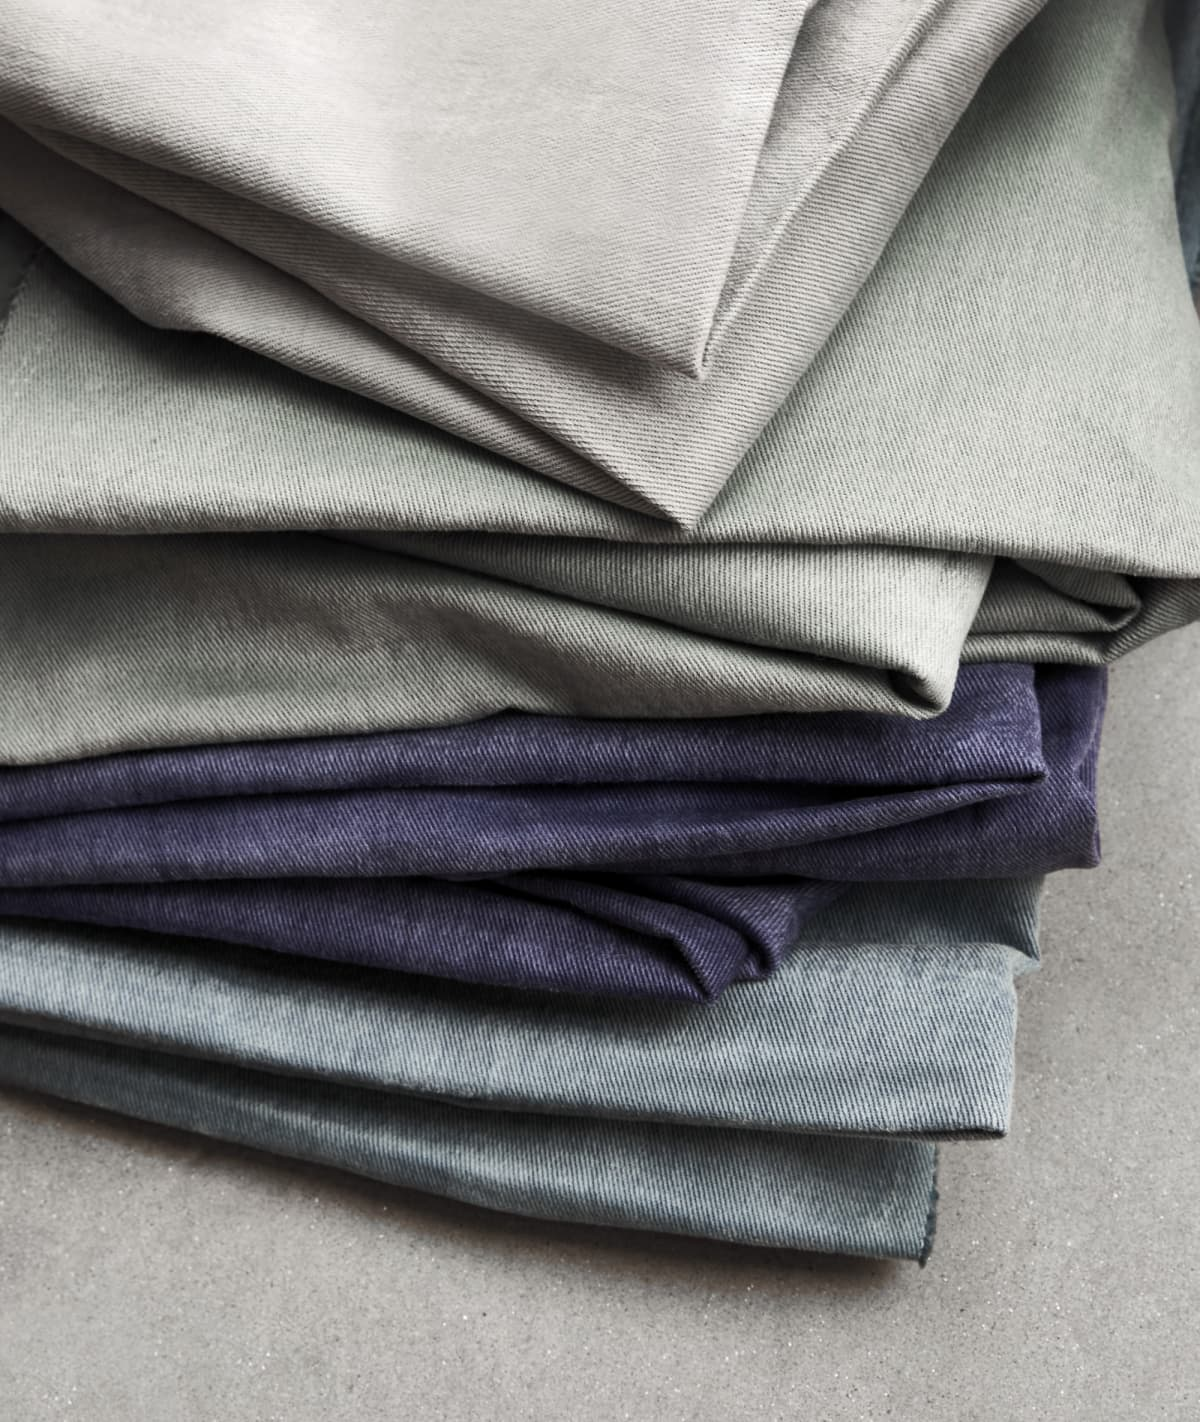 Stitched Cotton Twill Sustainable Curtains